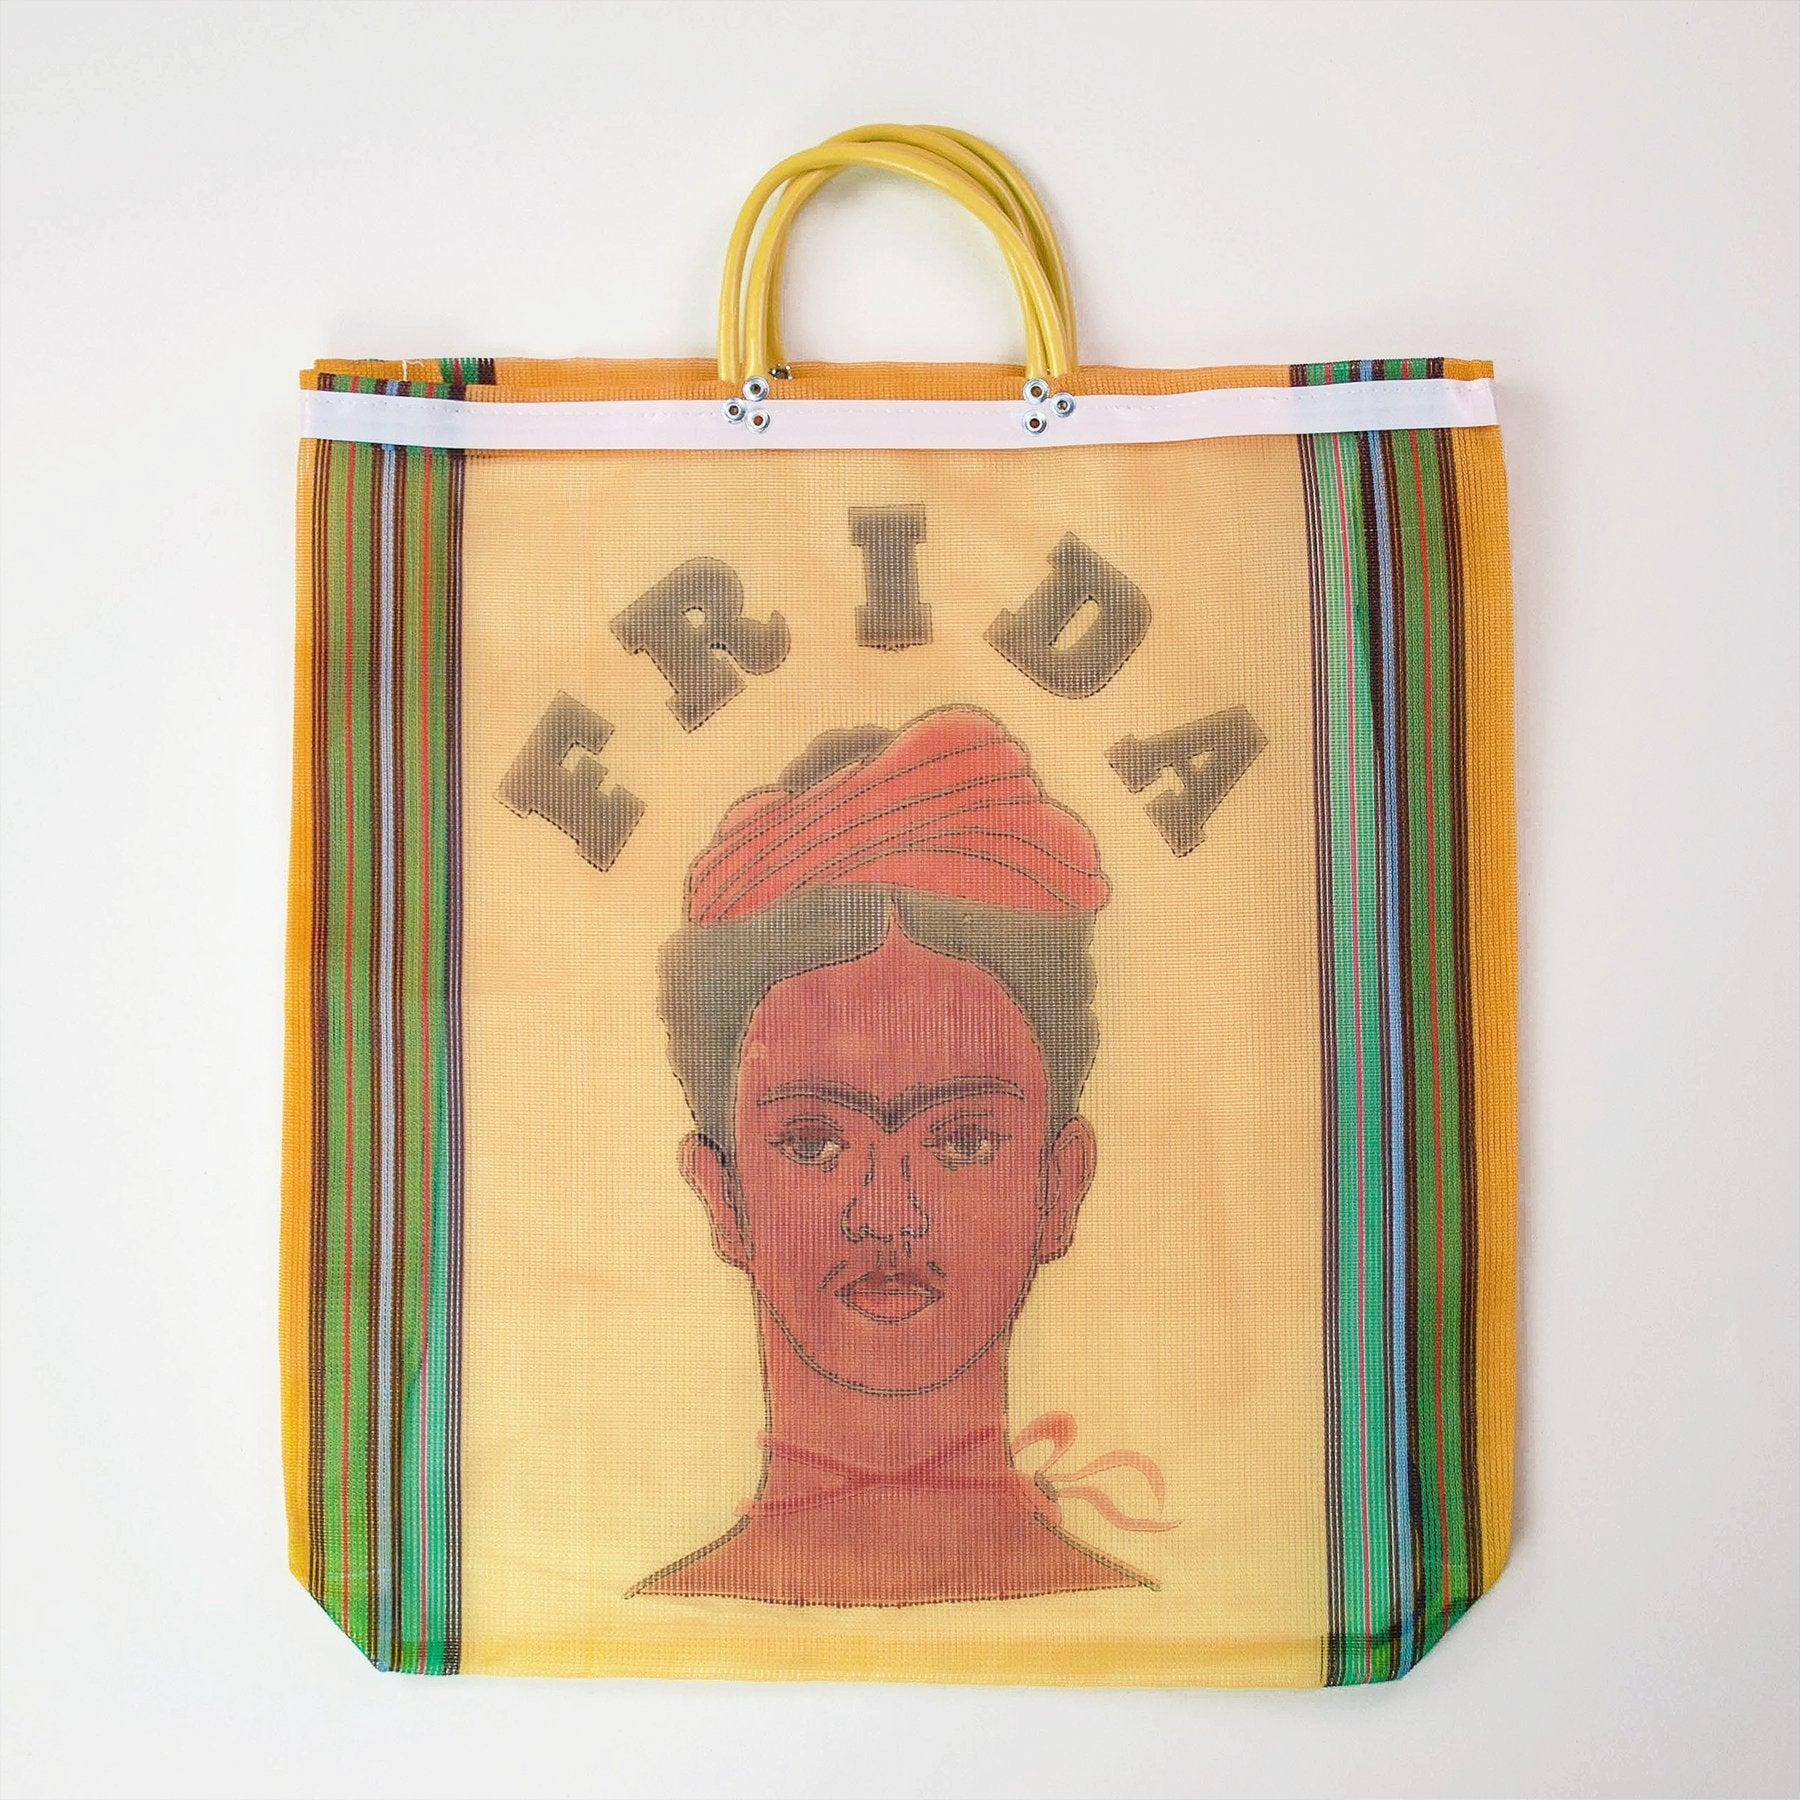 Frida Kahlo Shopper Bag - Orange